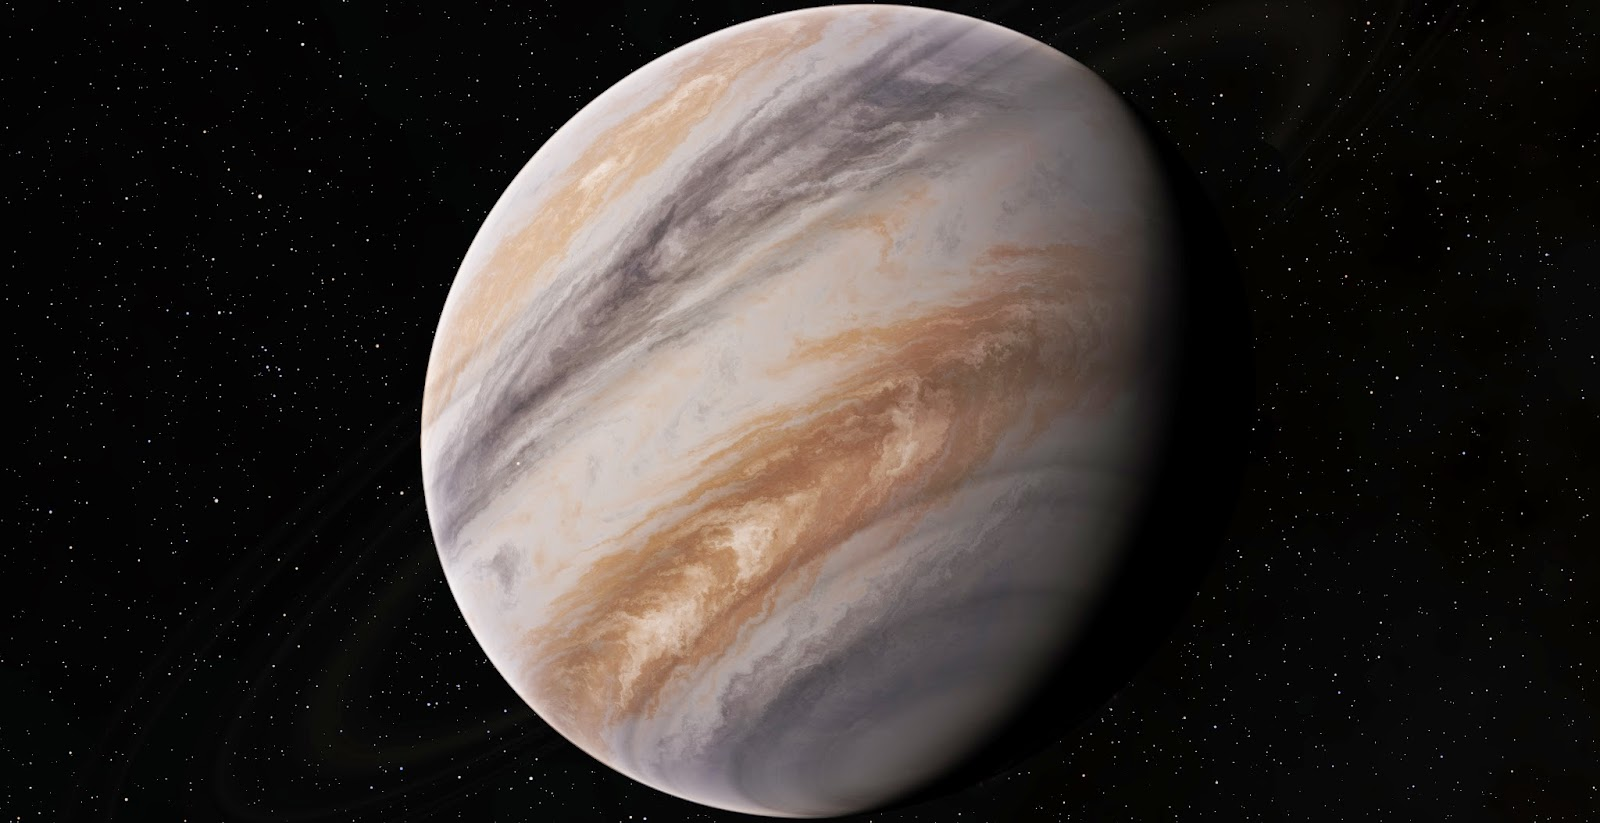 Beyond Earthly Skies Mega Earths And Chthonian Planets